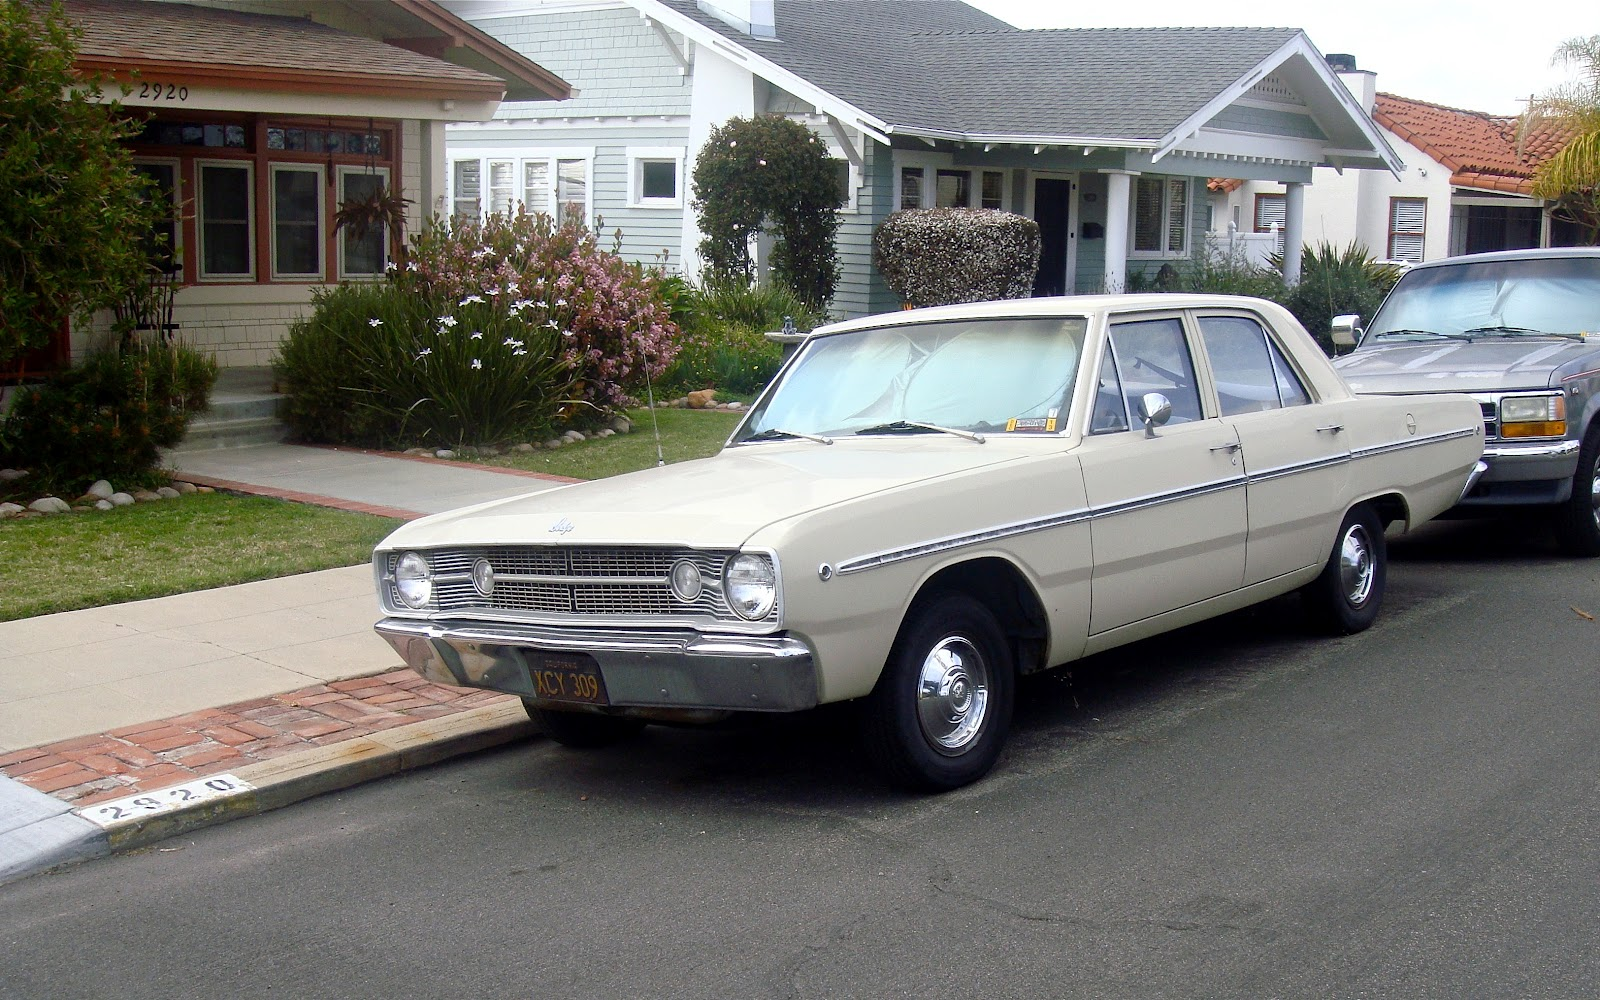 THE STREET PEEP: 1968 Dodge Dart 270 Sedan